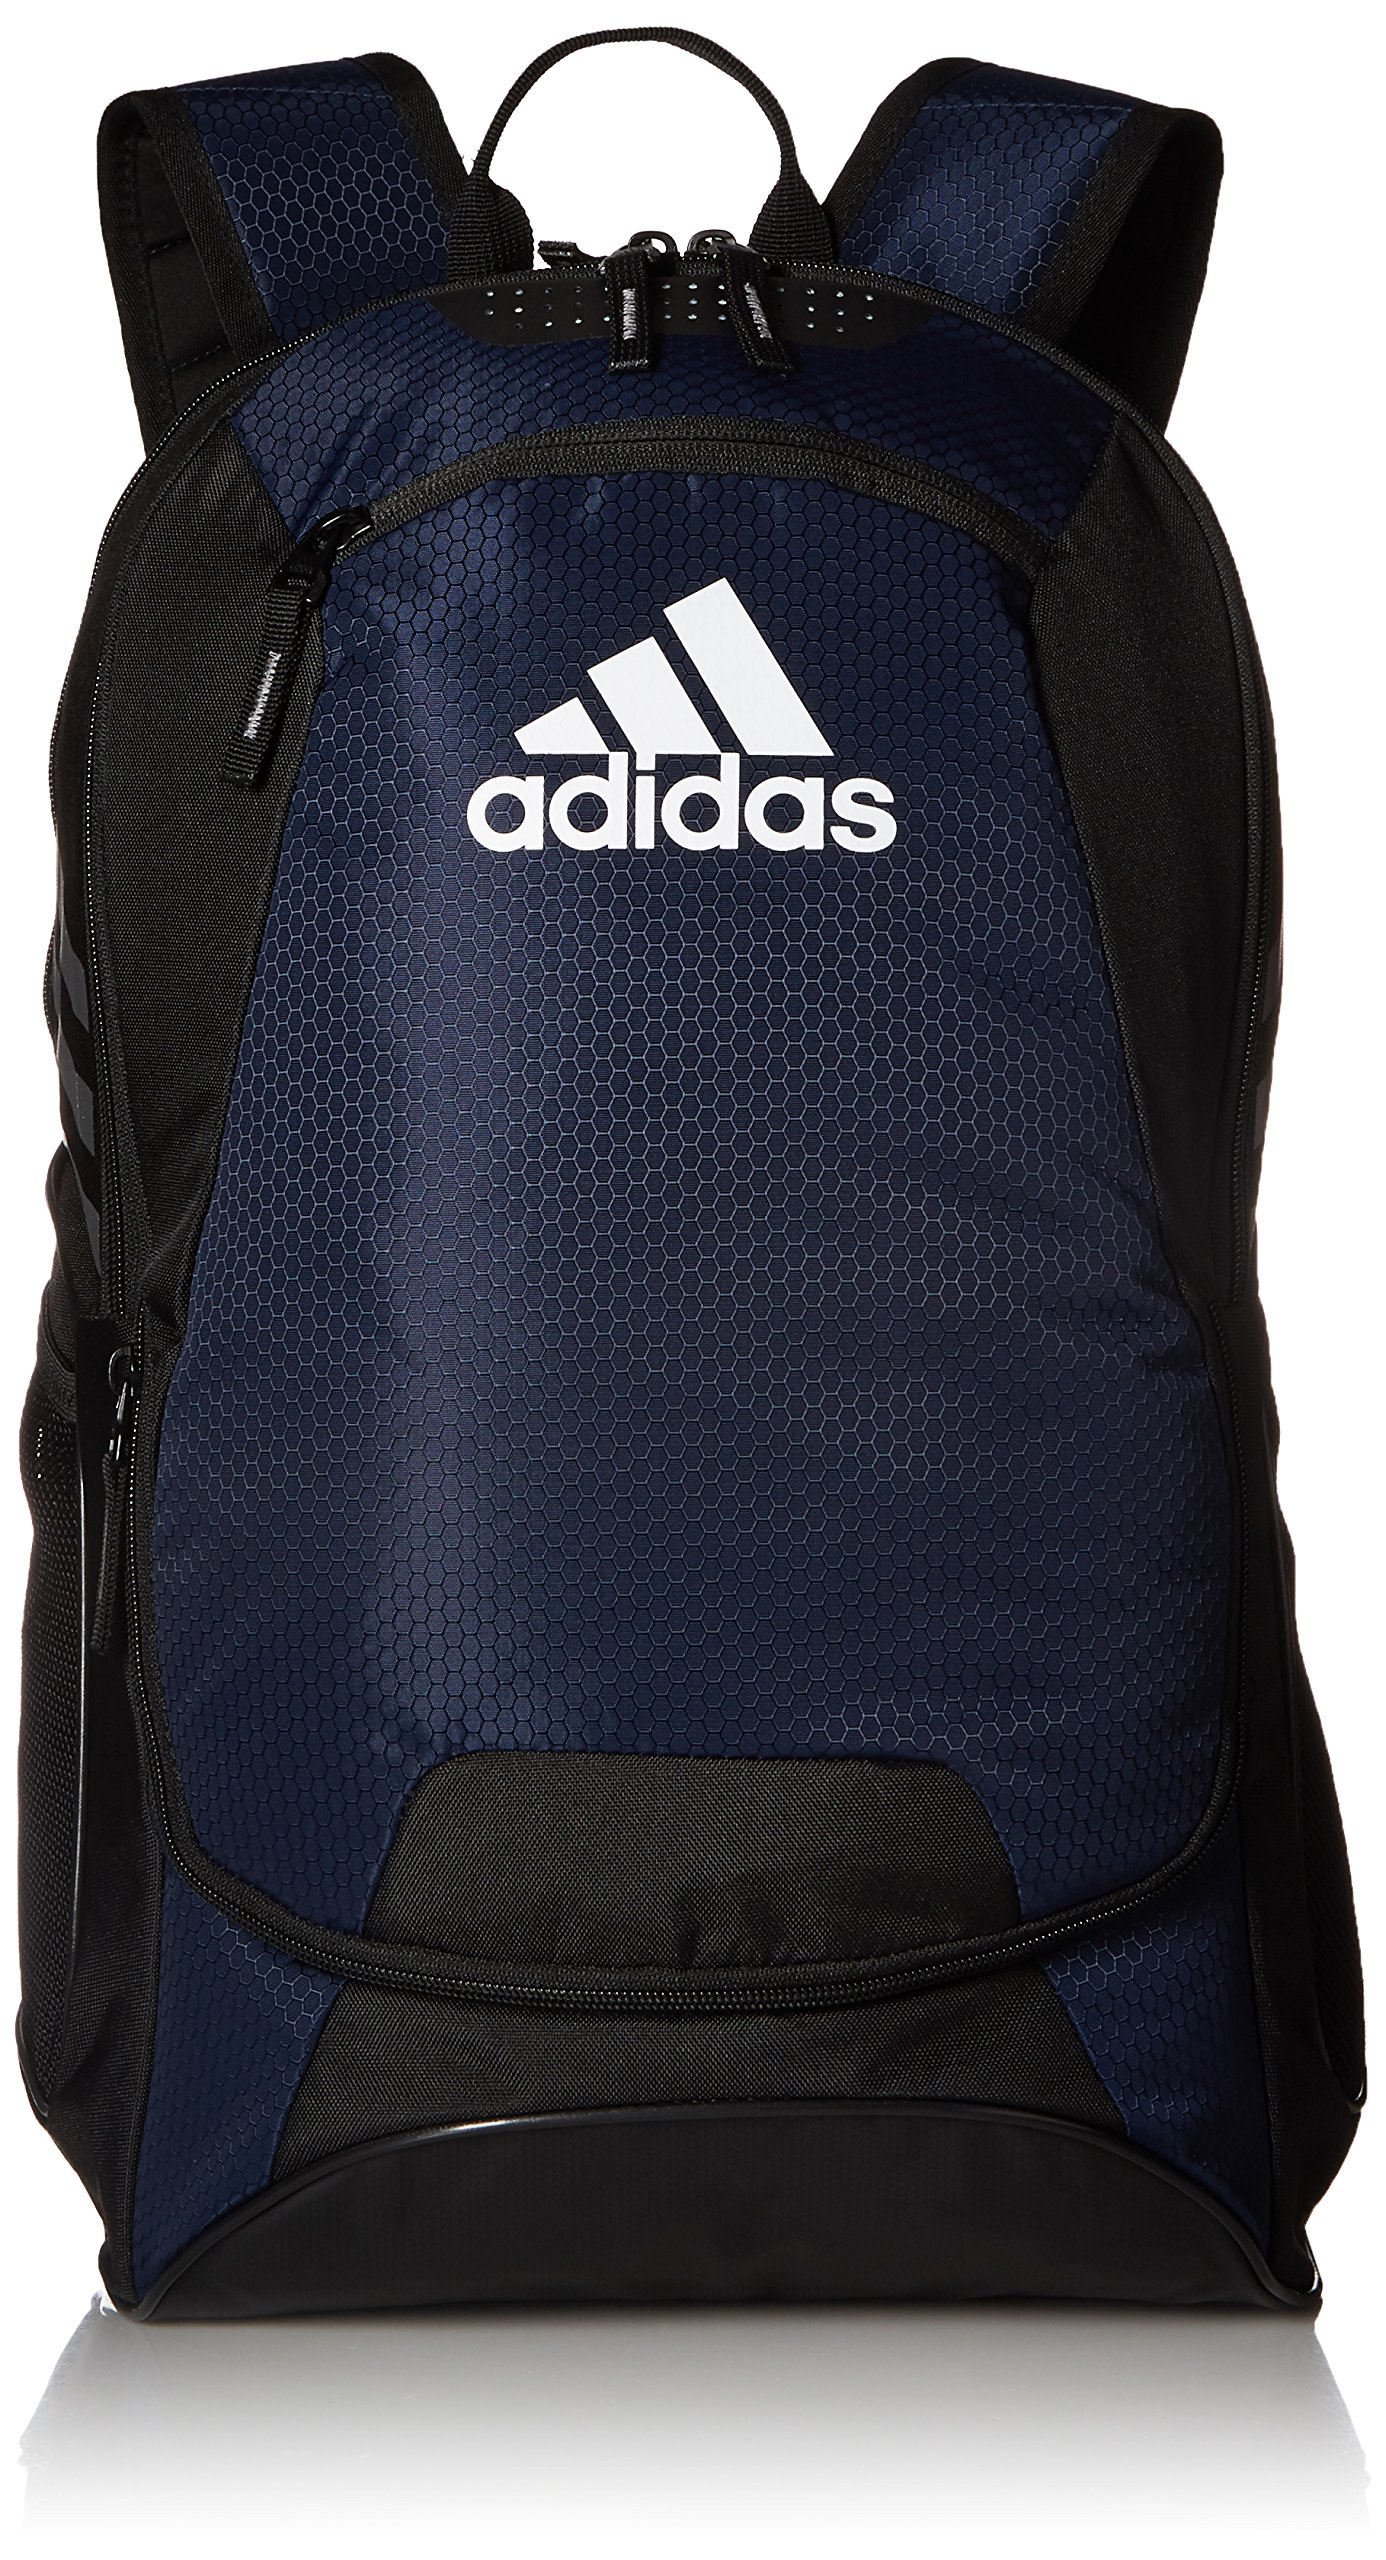 adidas Stadium II Backpack, Collegiate Blue, One Size